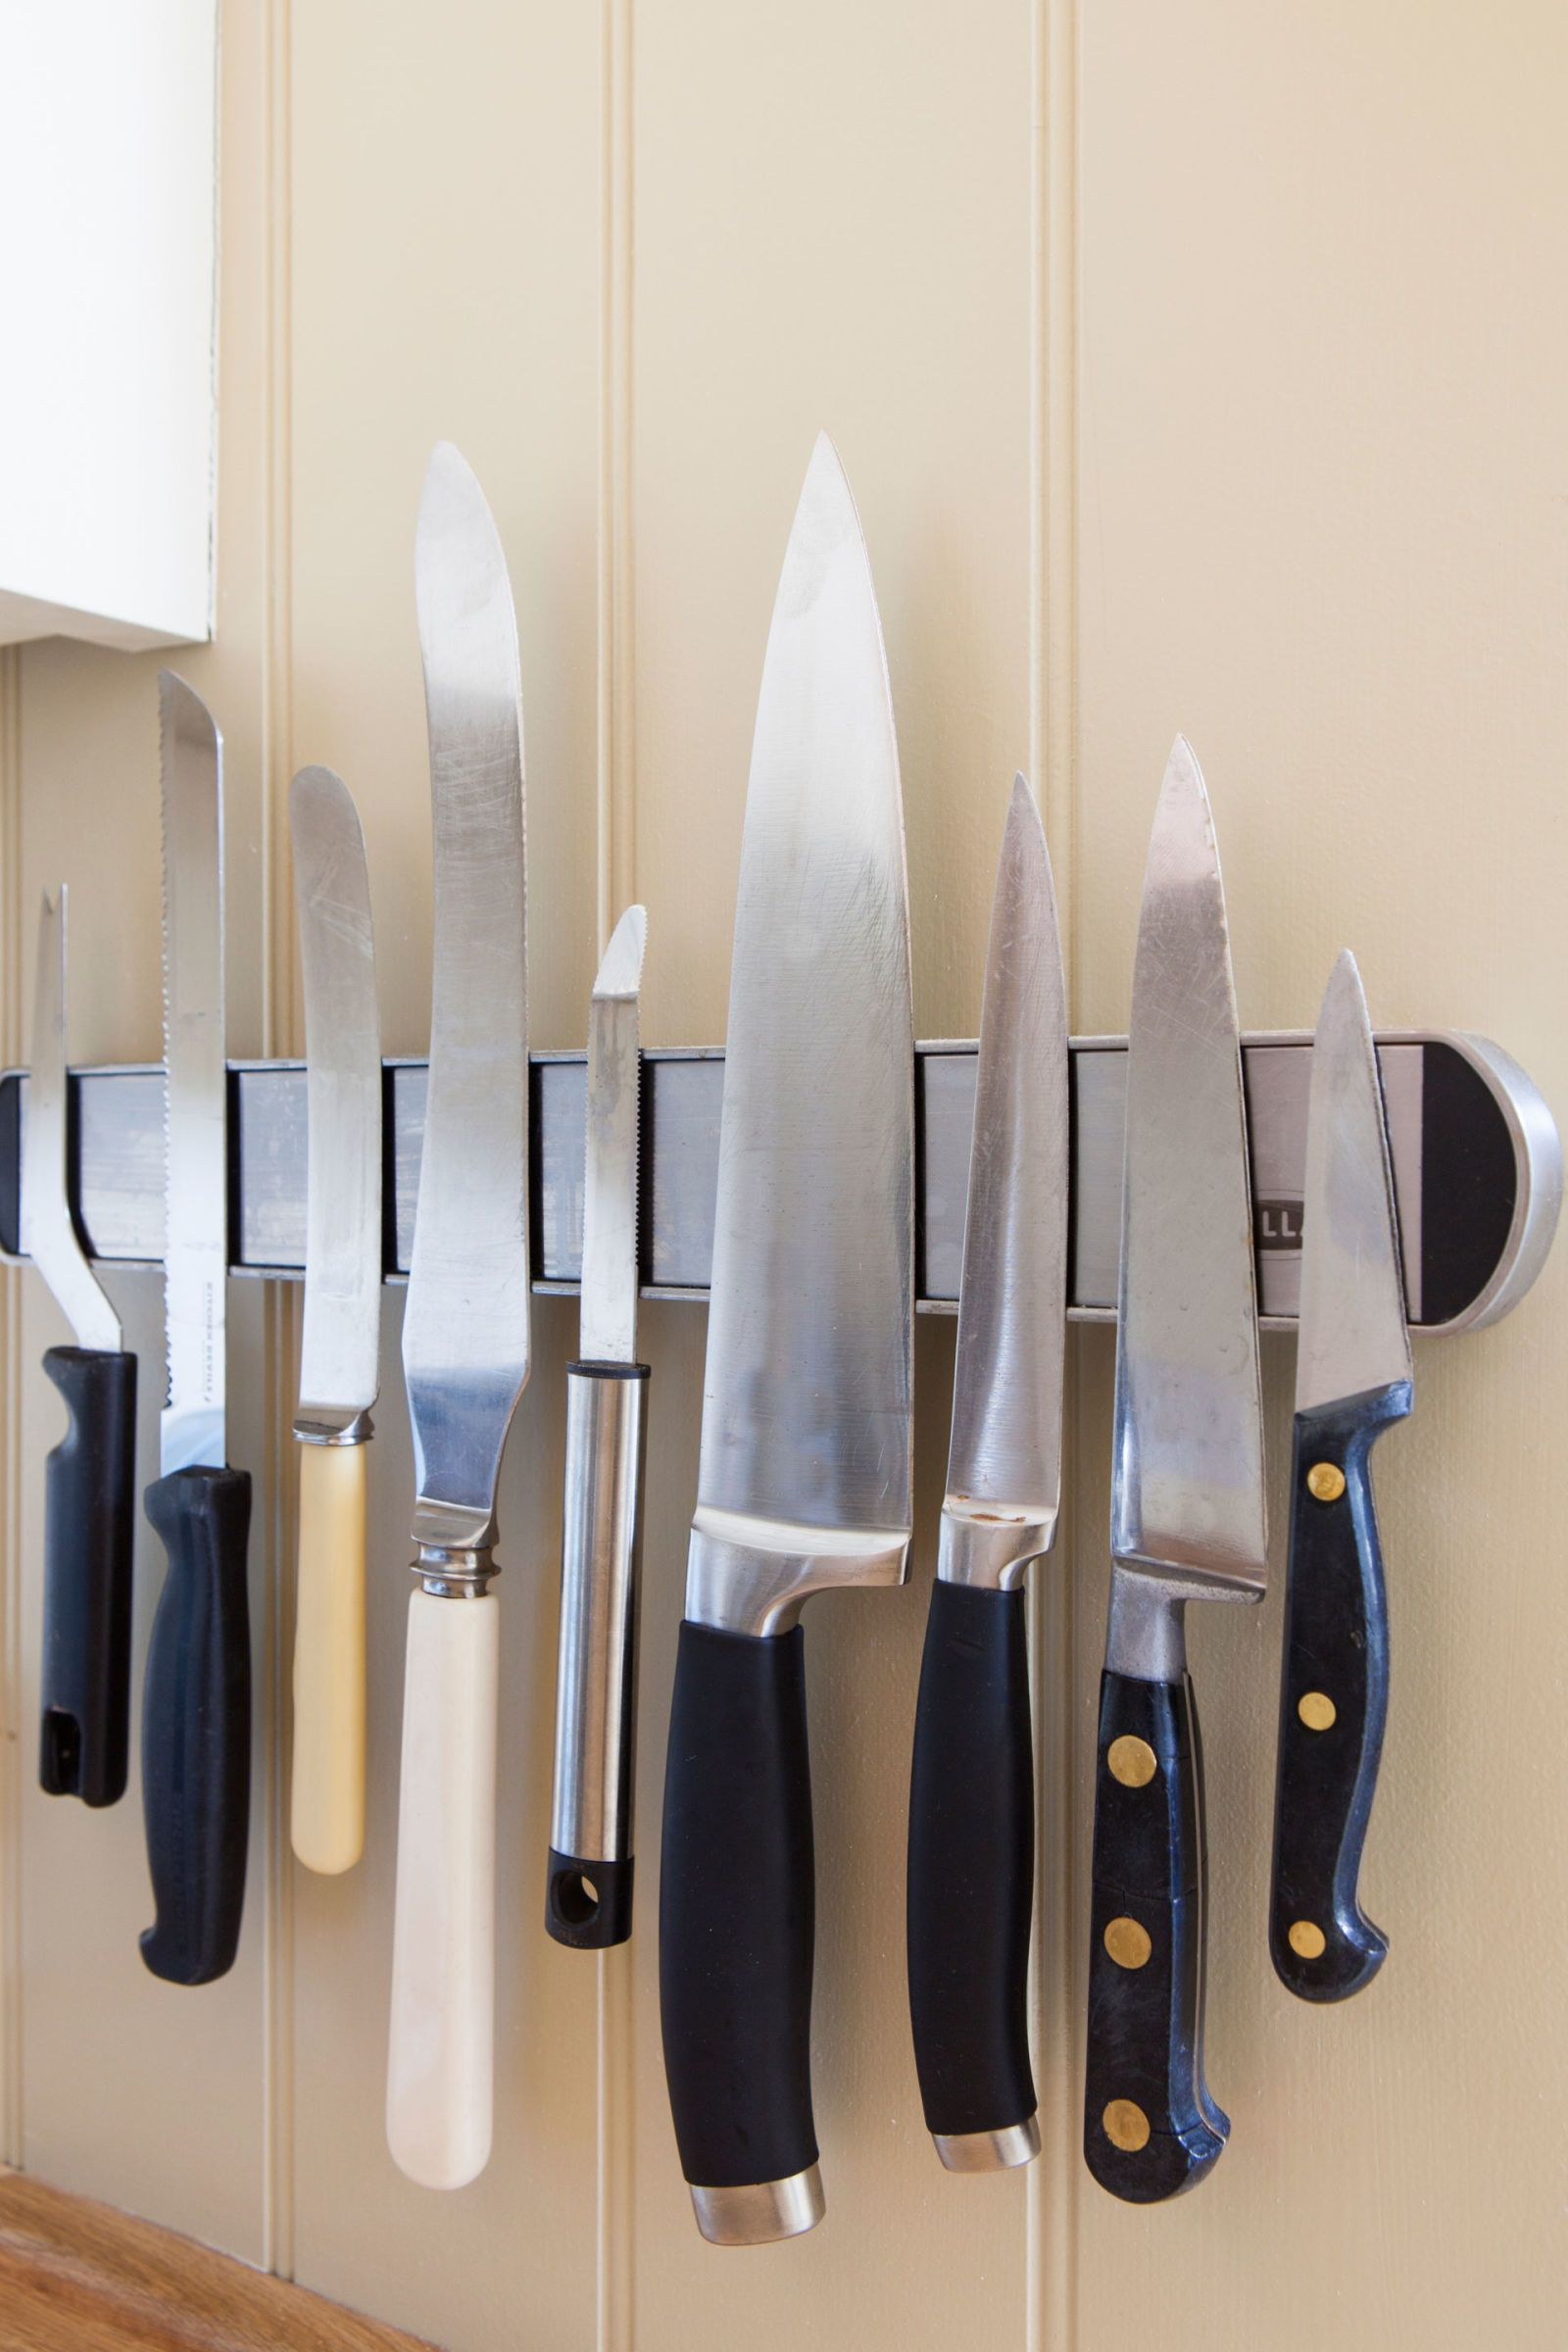 Swap out a clunky, space-hogging knife block for a sleek wall-mountable magnetic strip that keeps your knives clean and far away from tiny, curious hands.   - Redbook.com